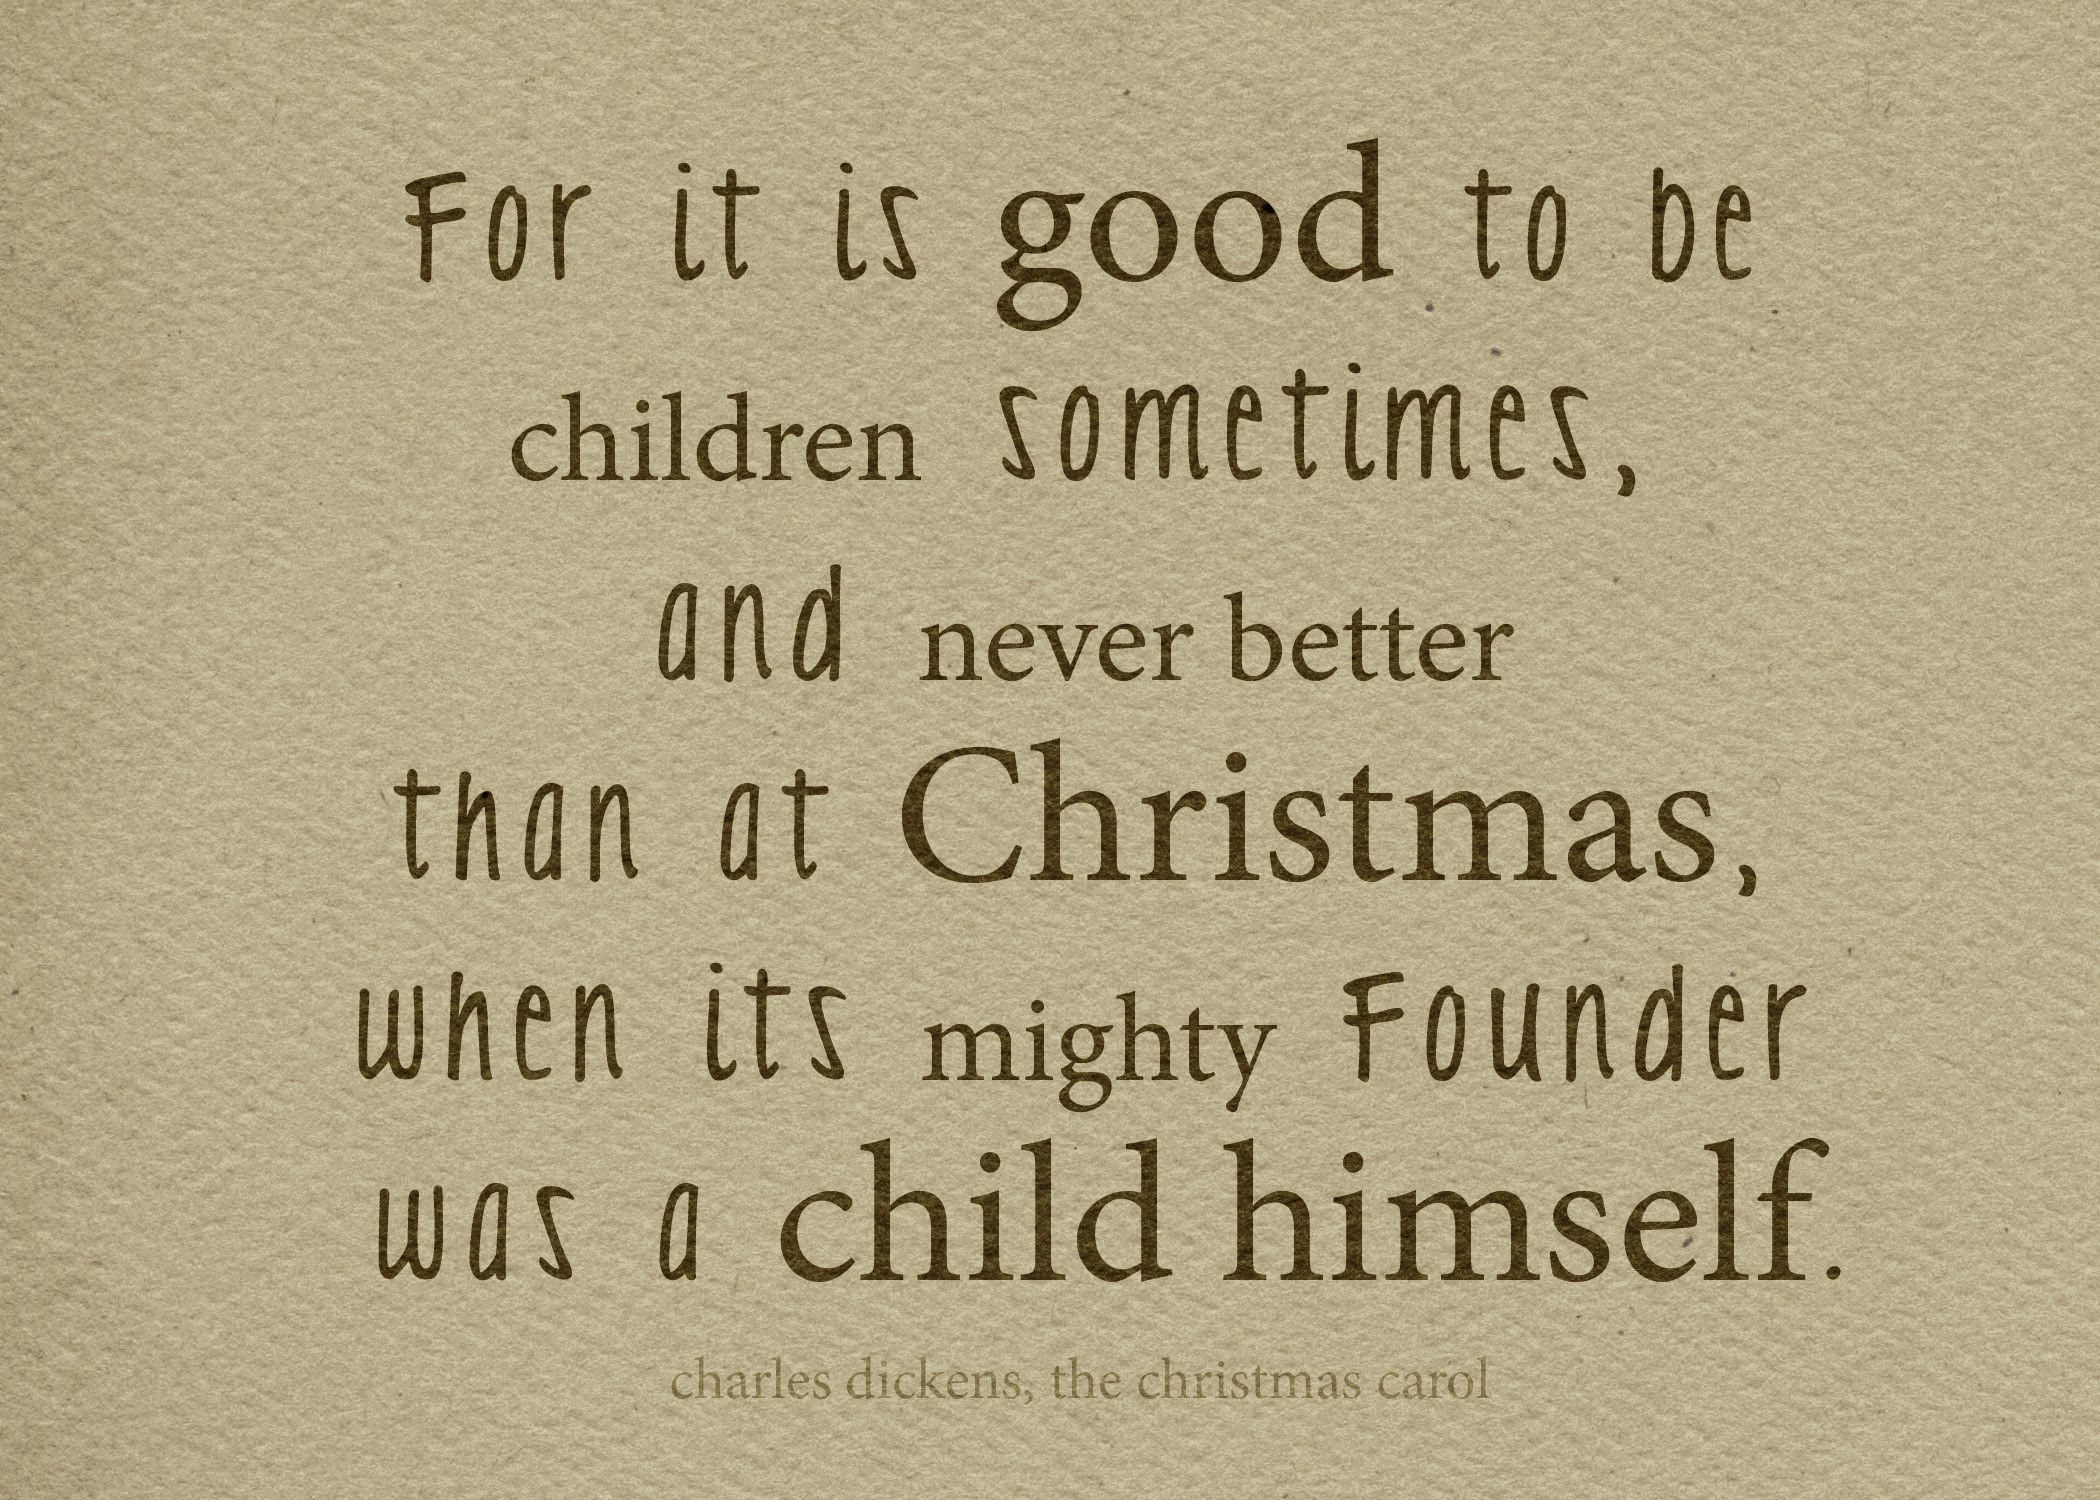 Like a child be... especially at Christmas, whose founder was a ...